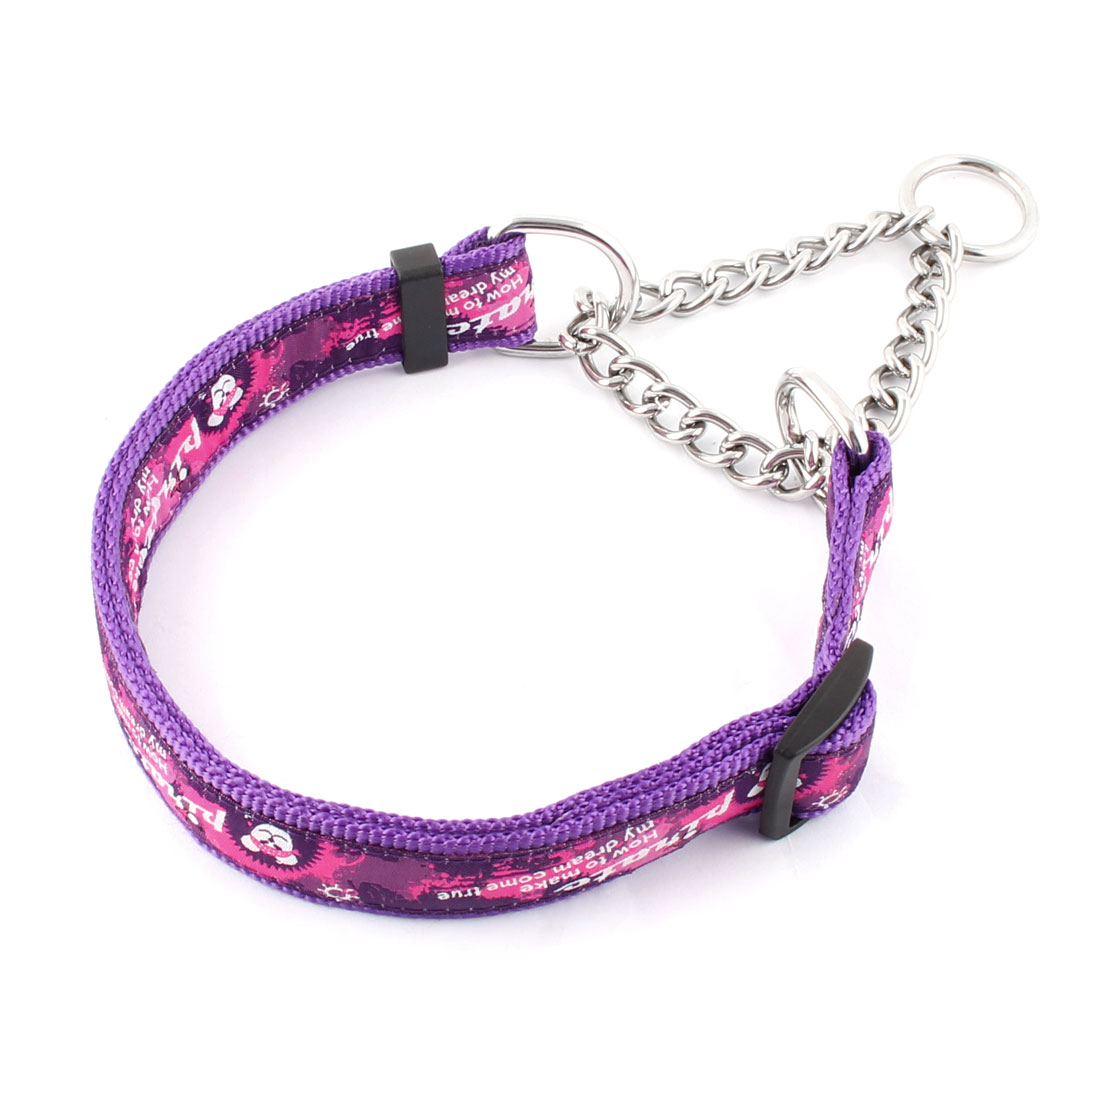 Dog Outdoor Nylon Rope Pirate Pattern Adjustable Neck Chain Decor Leash Purple